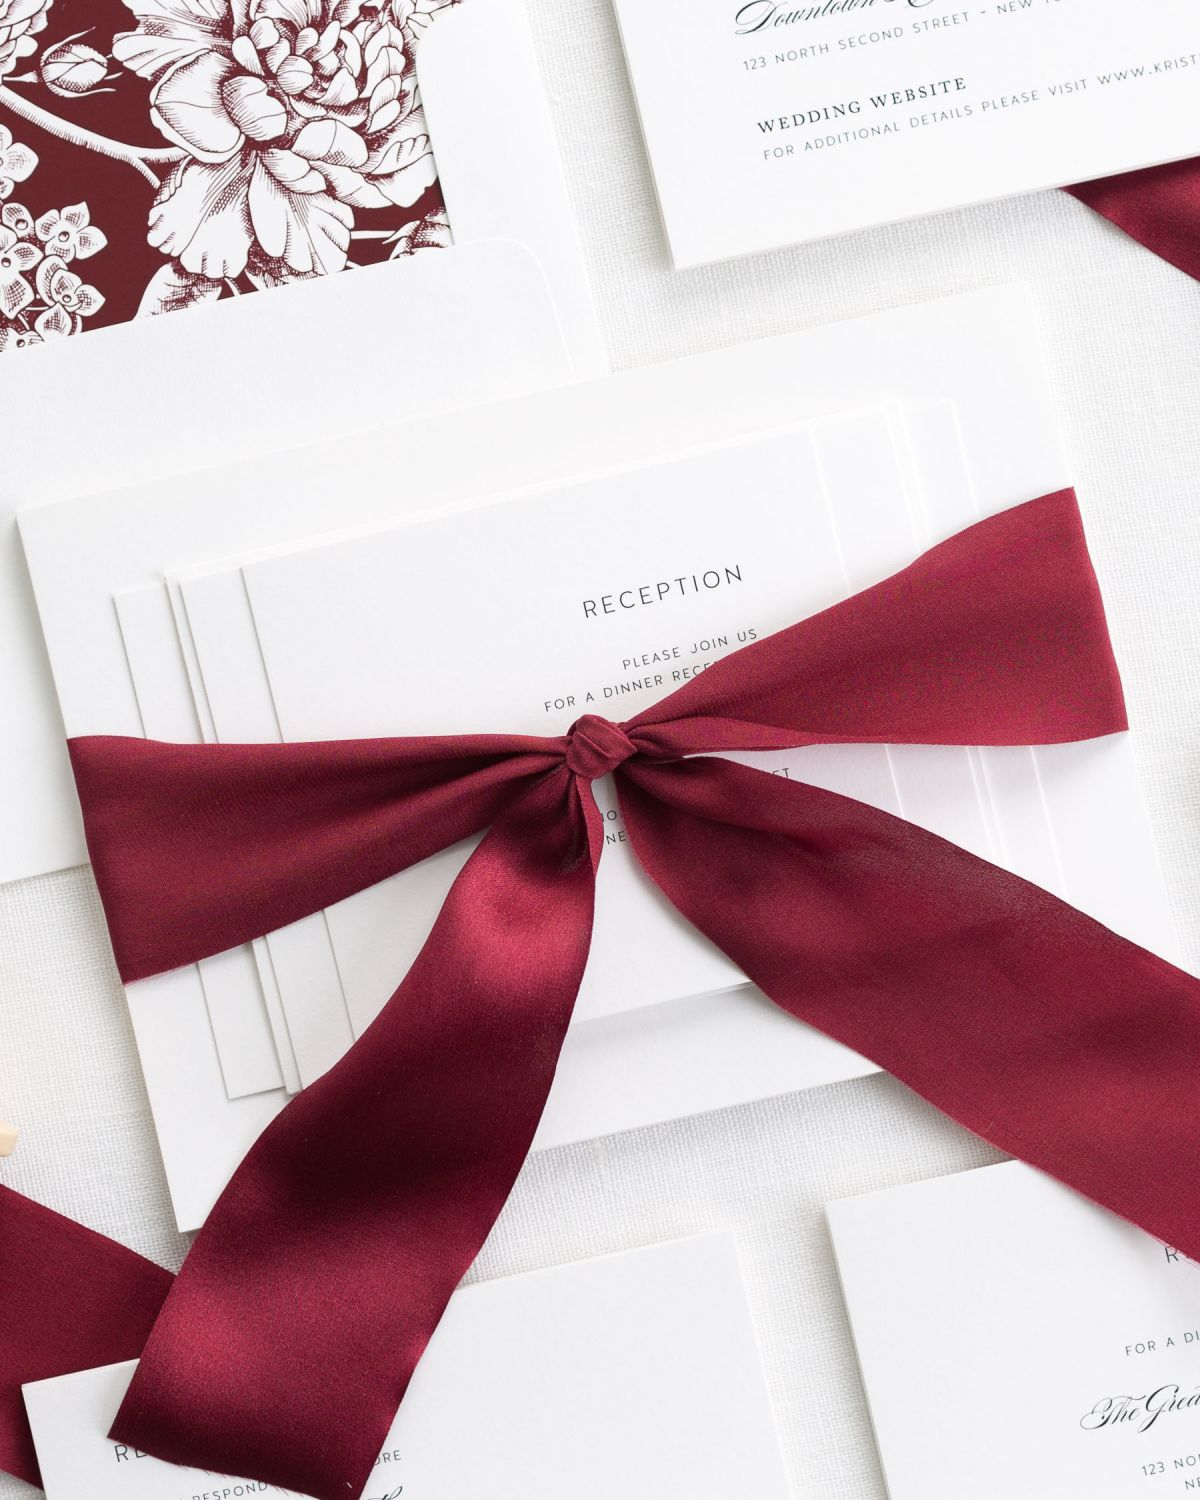 Cabernet Wedding Invitations with Silk Ribbon